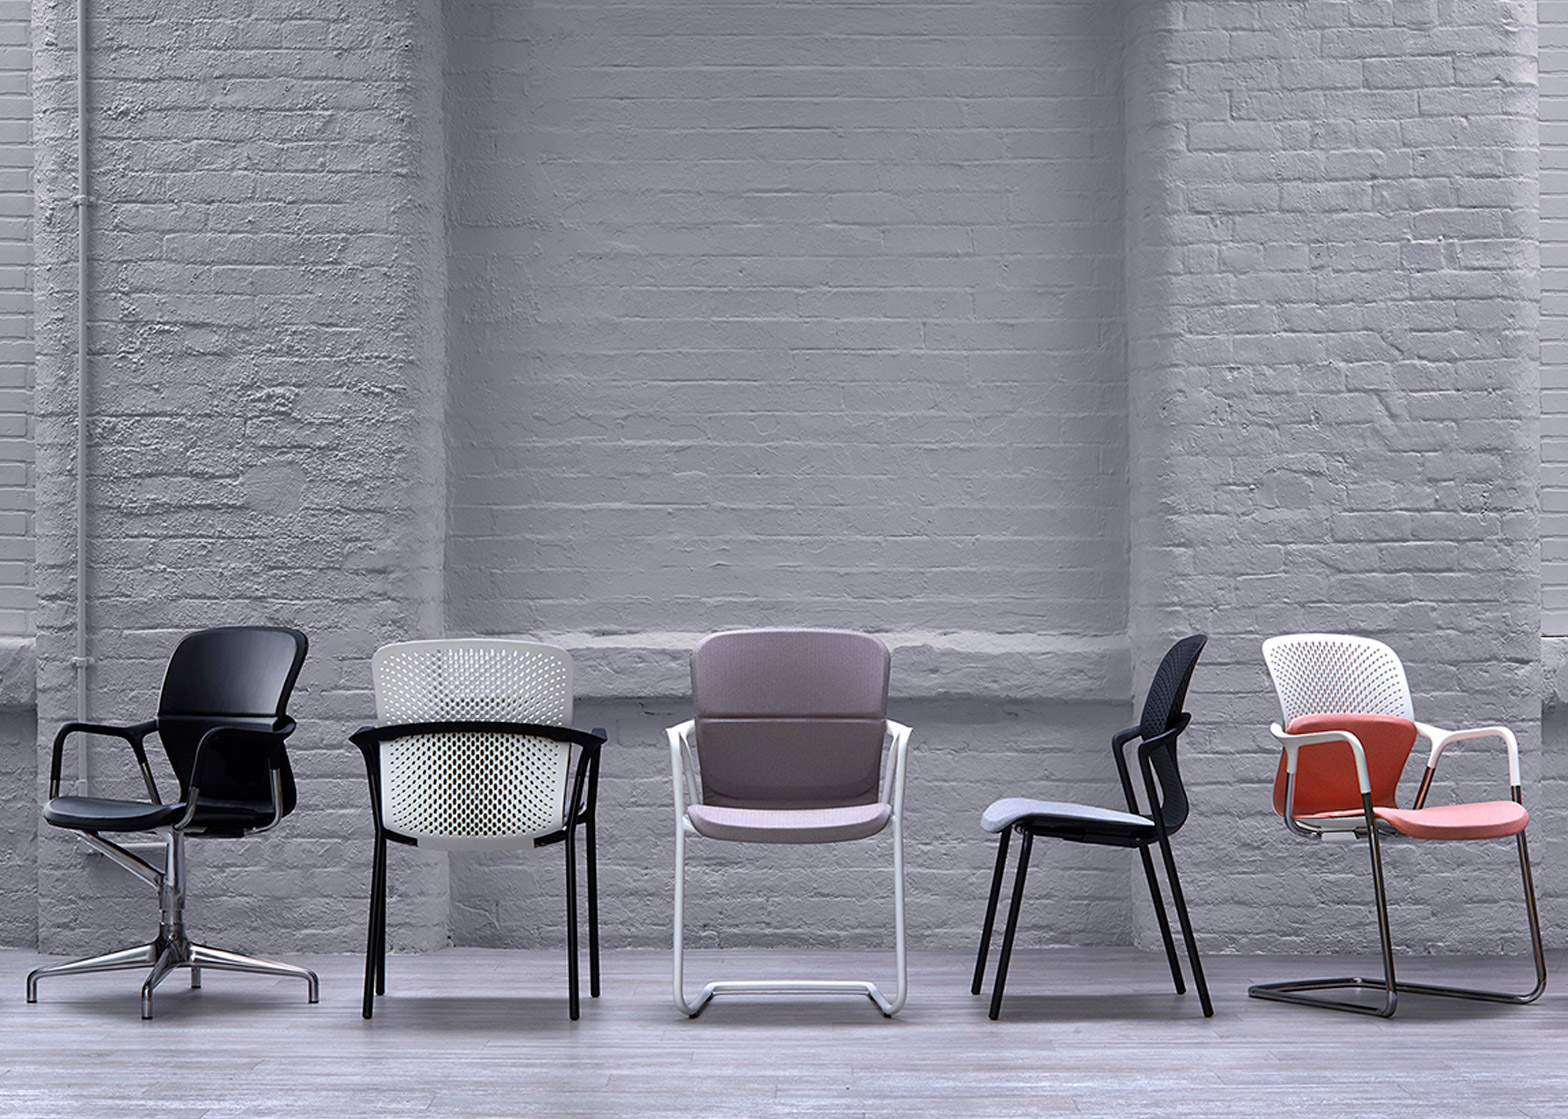 Keyn office chairs for Herman Miller by forpeople at Clerkenwell design week 2016